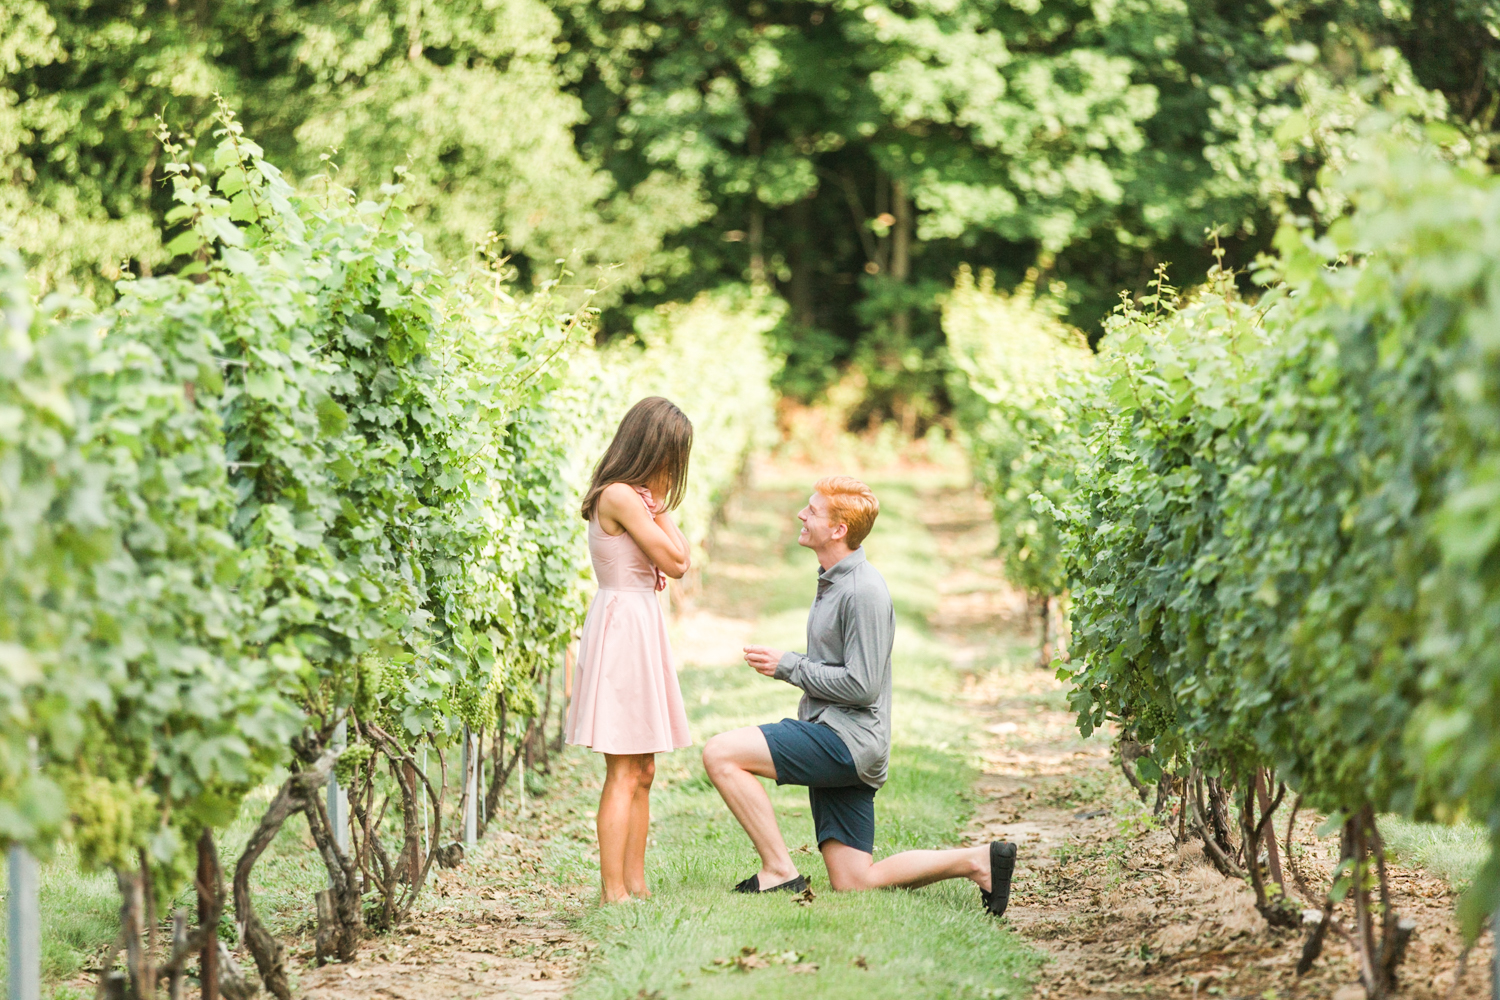 chamard-vineyards-clinton-ct-propsal-session-top-connecticut-nyc-westchester-destination-wedding-engagement-boudoir-photographer-shaina-lee-photography-photo-28.jpg